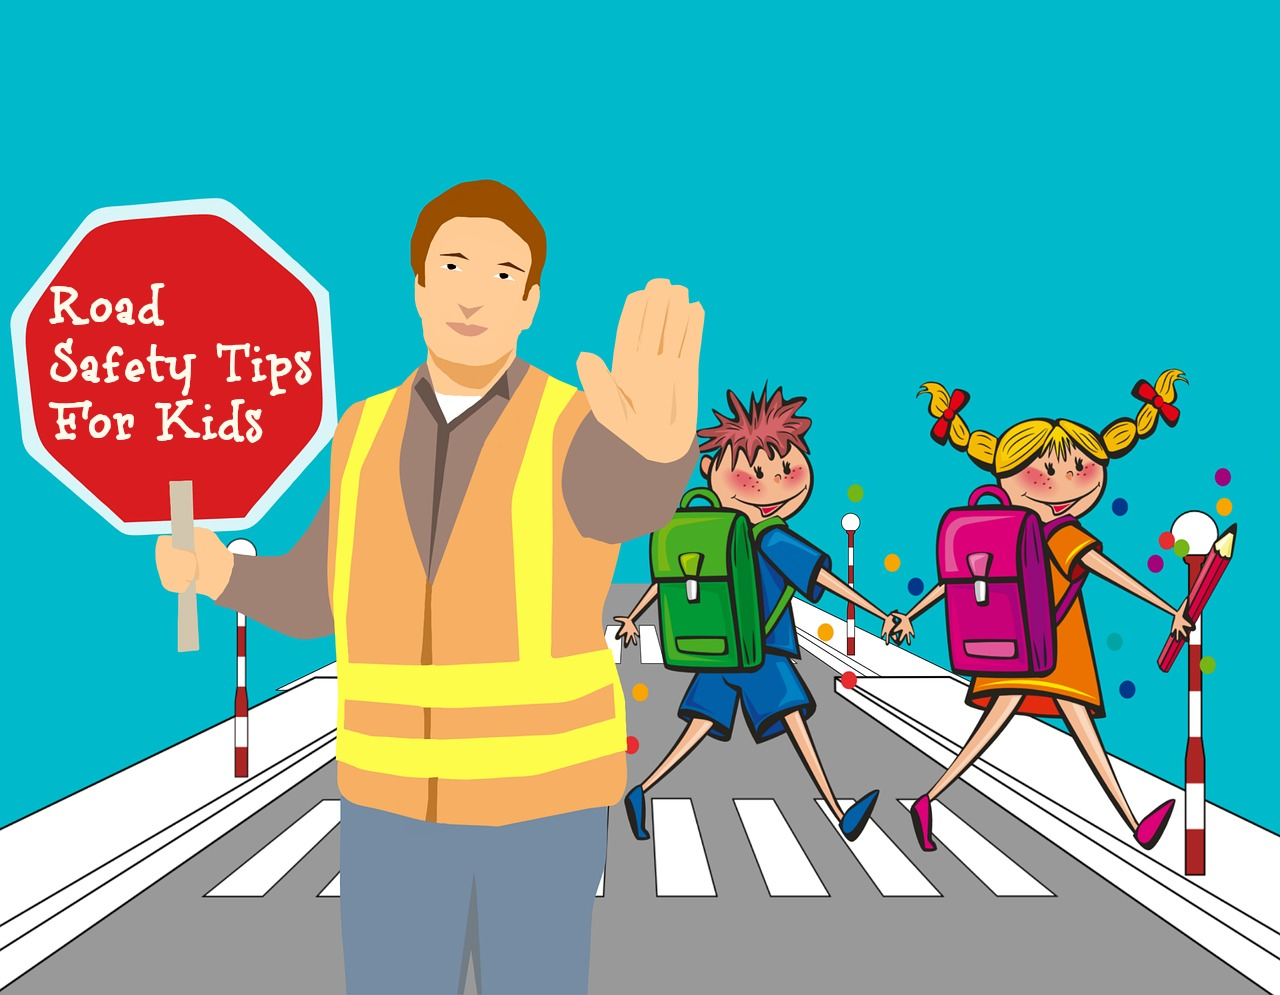 Road Safety Tips For Kids